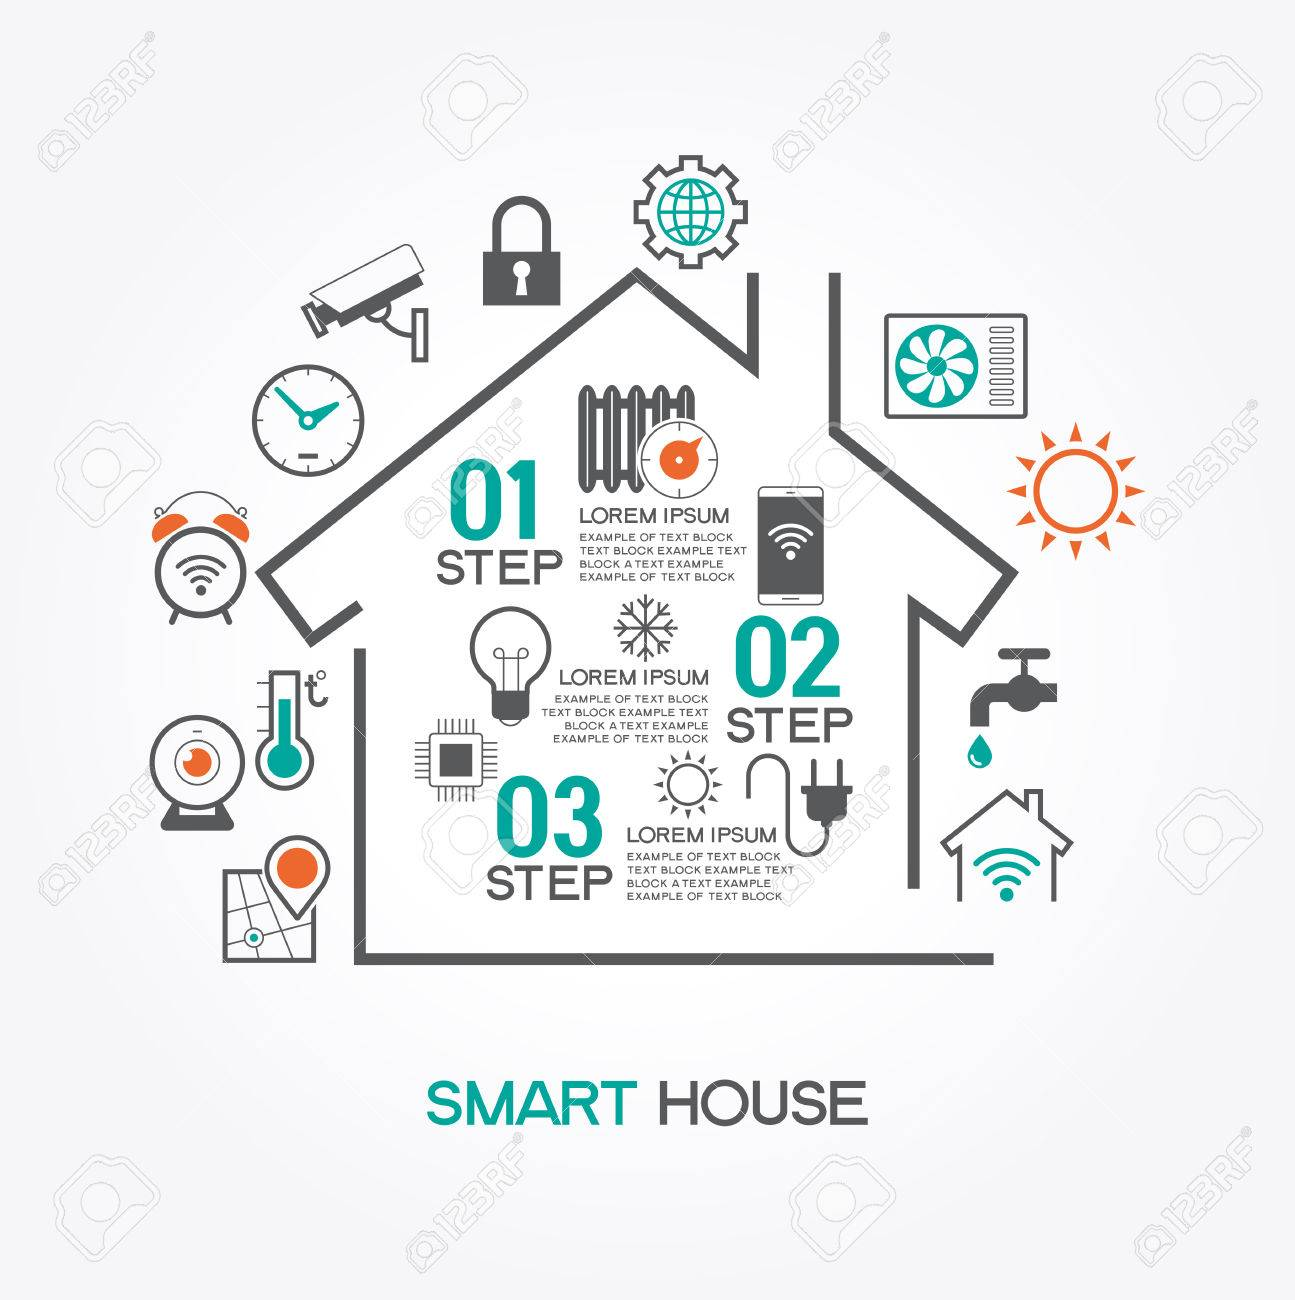 Smart Home System smart home concept smart house infographic concept